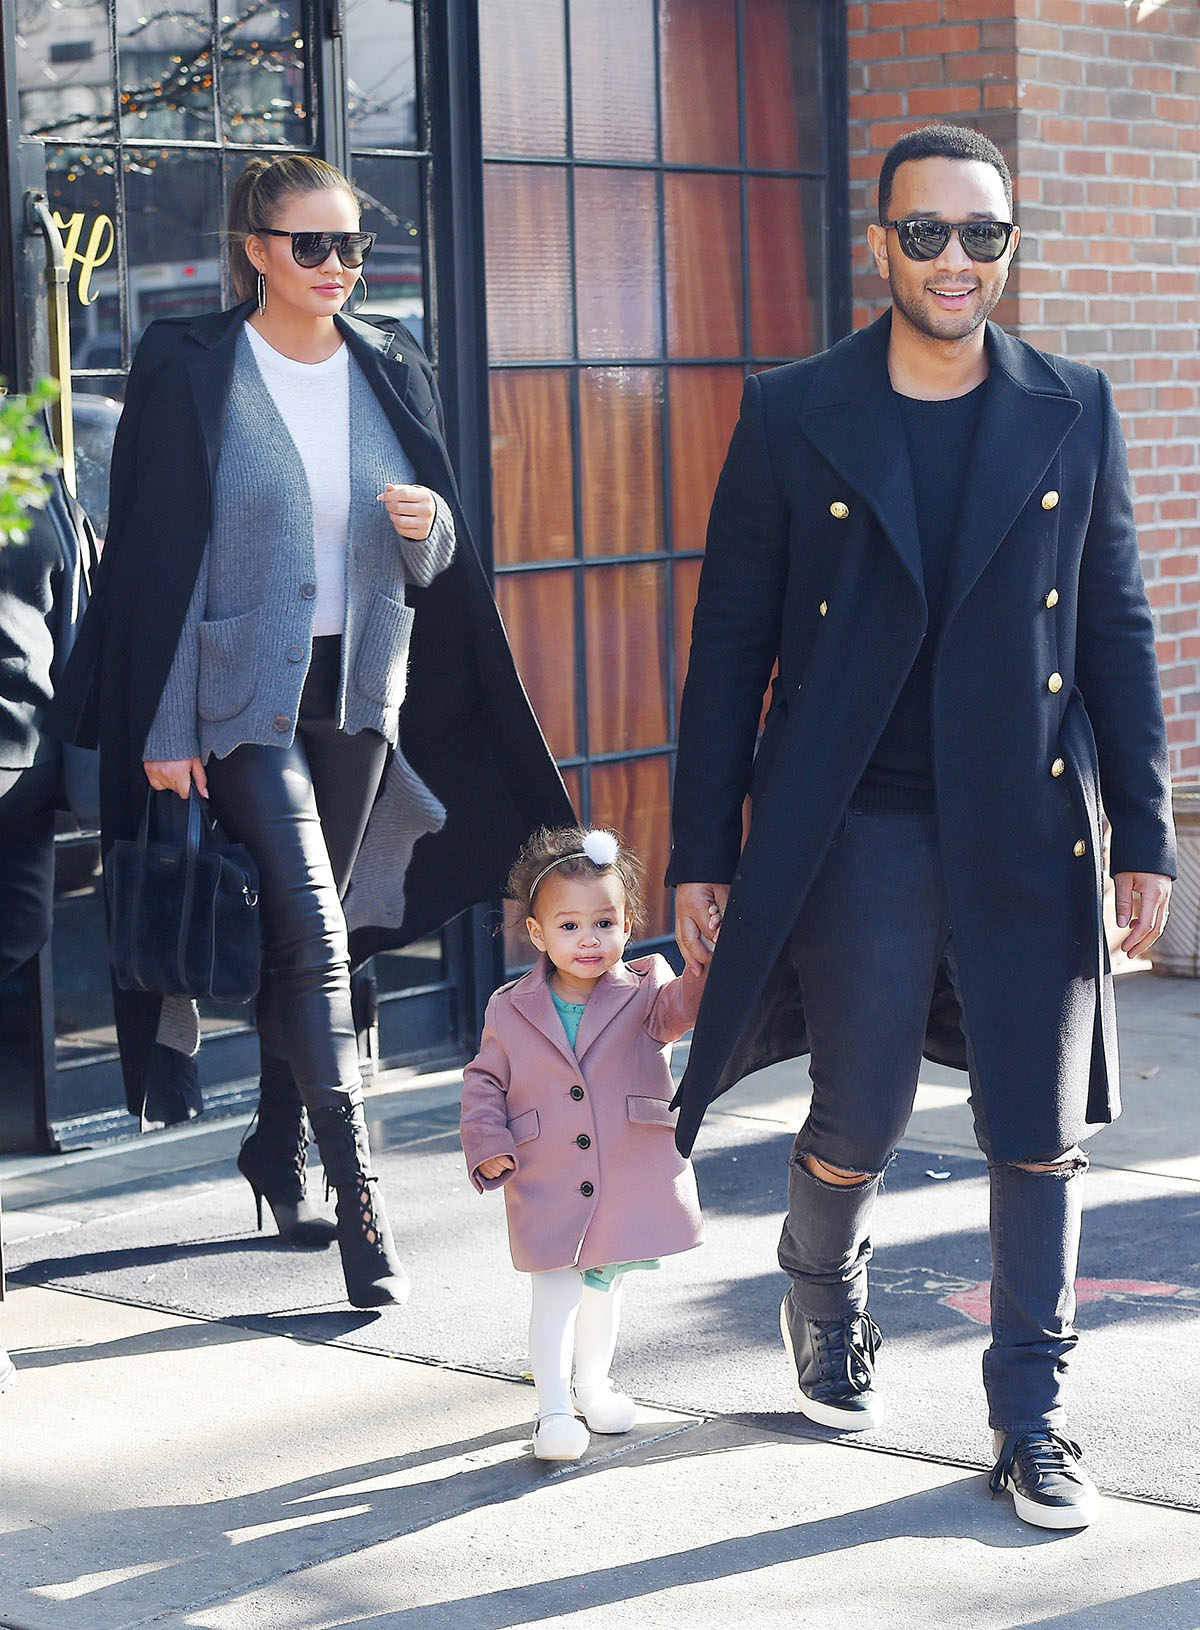 John Legend, Chrissy Teigen and daughter Luna in NYC